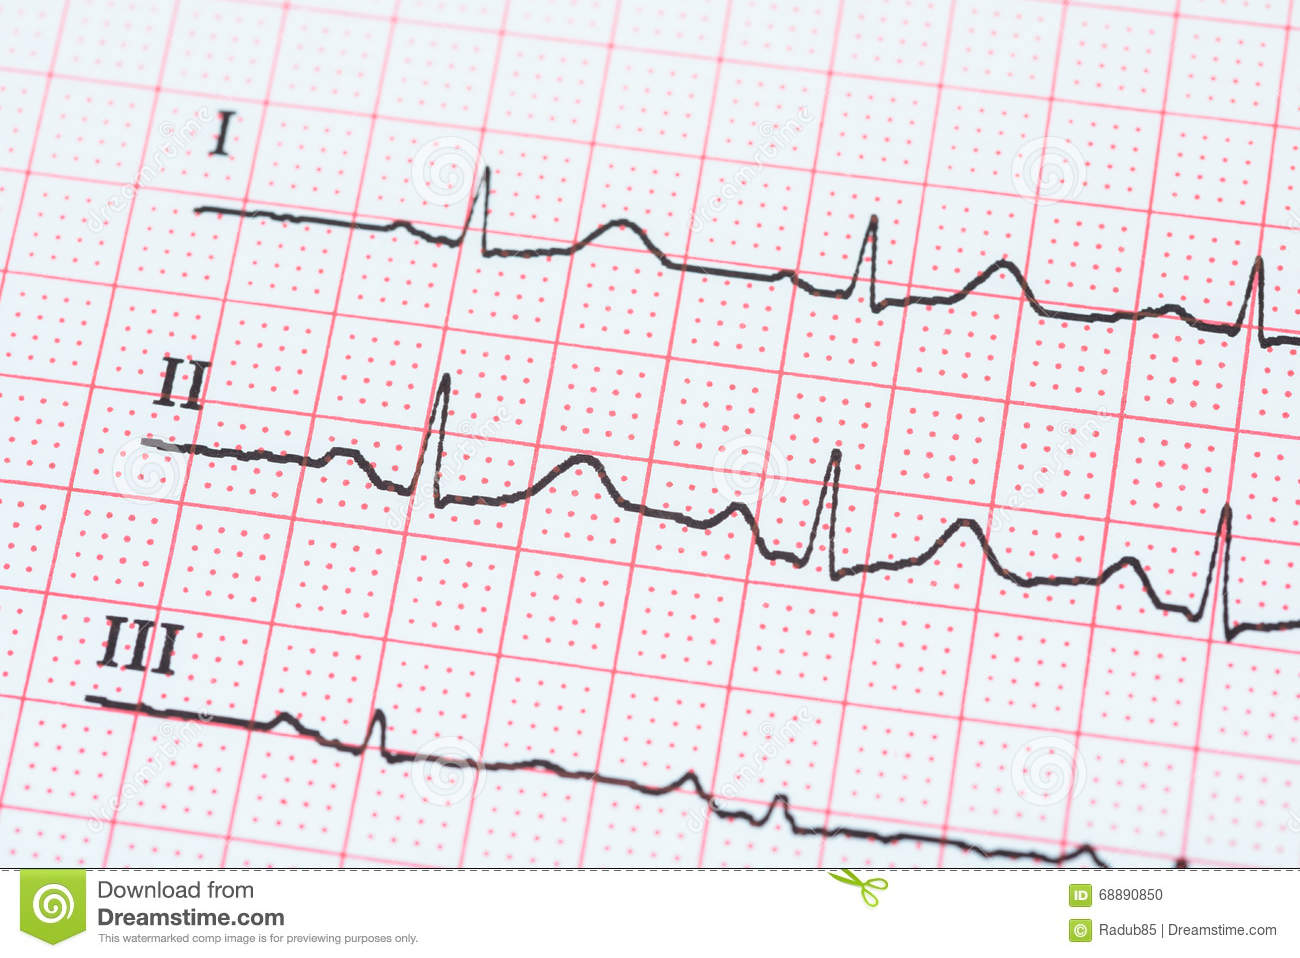 Normal Ecg Stock Photos Royalty Free Images Diagram Of Electrocardiogram Paper Public Domain Image Sinus Heart Rhythm On Record Showing